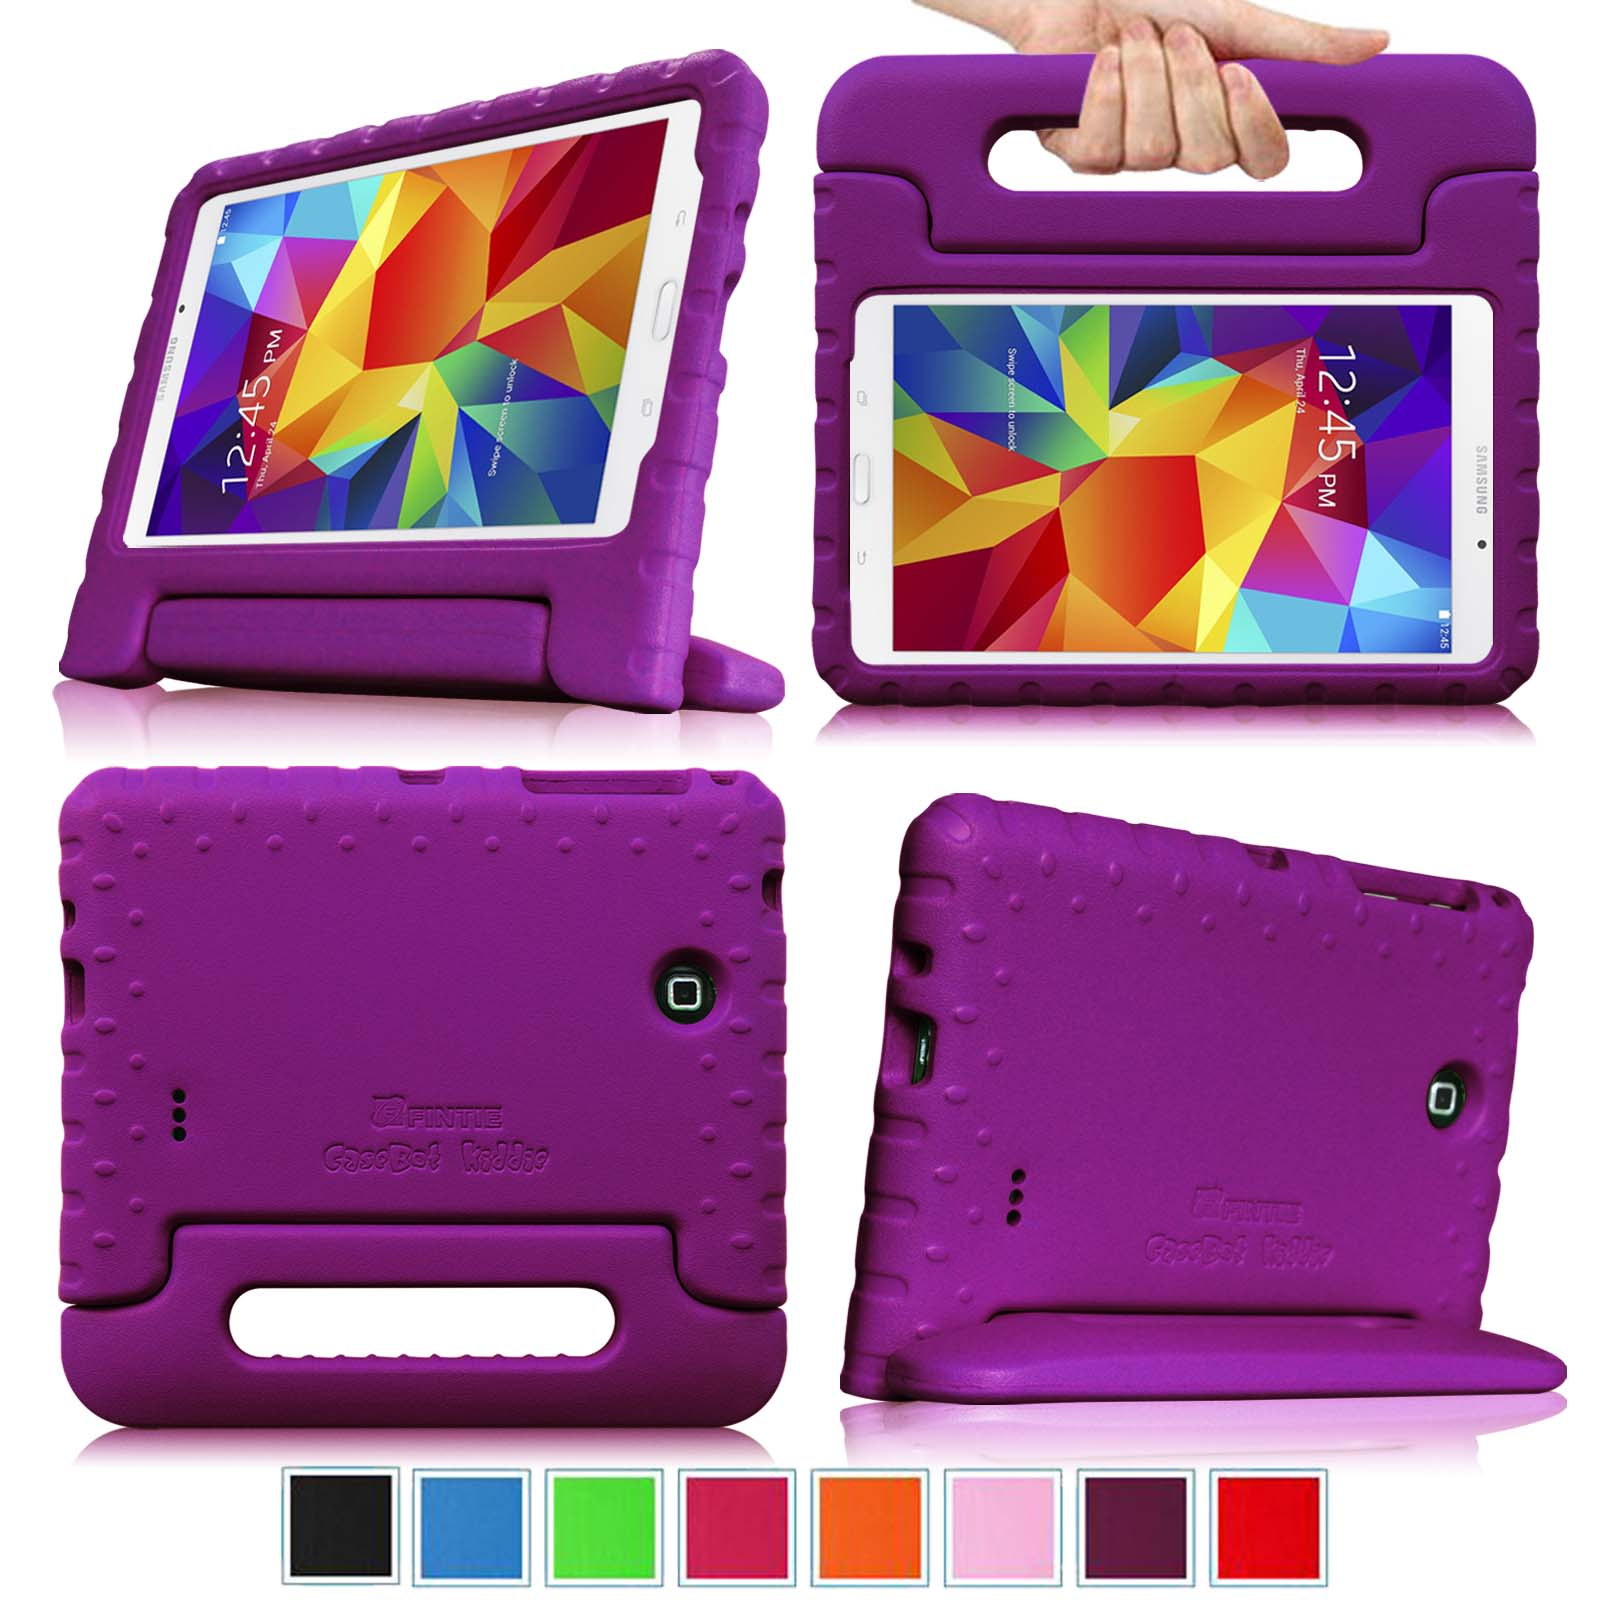 Samsung Galaxy Tab 4 7.0 Inch Case - Fintie Lightweight Shockproof Convertible Handle Stand Cover Kids Friendly, Purple